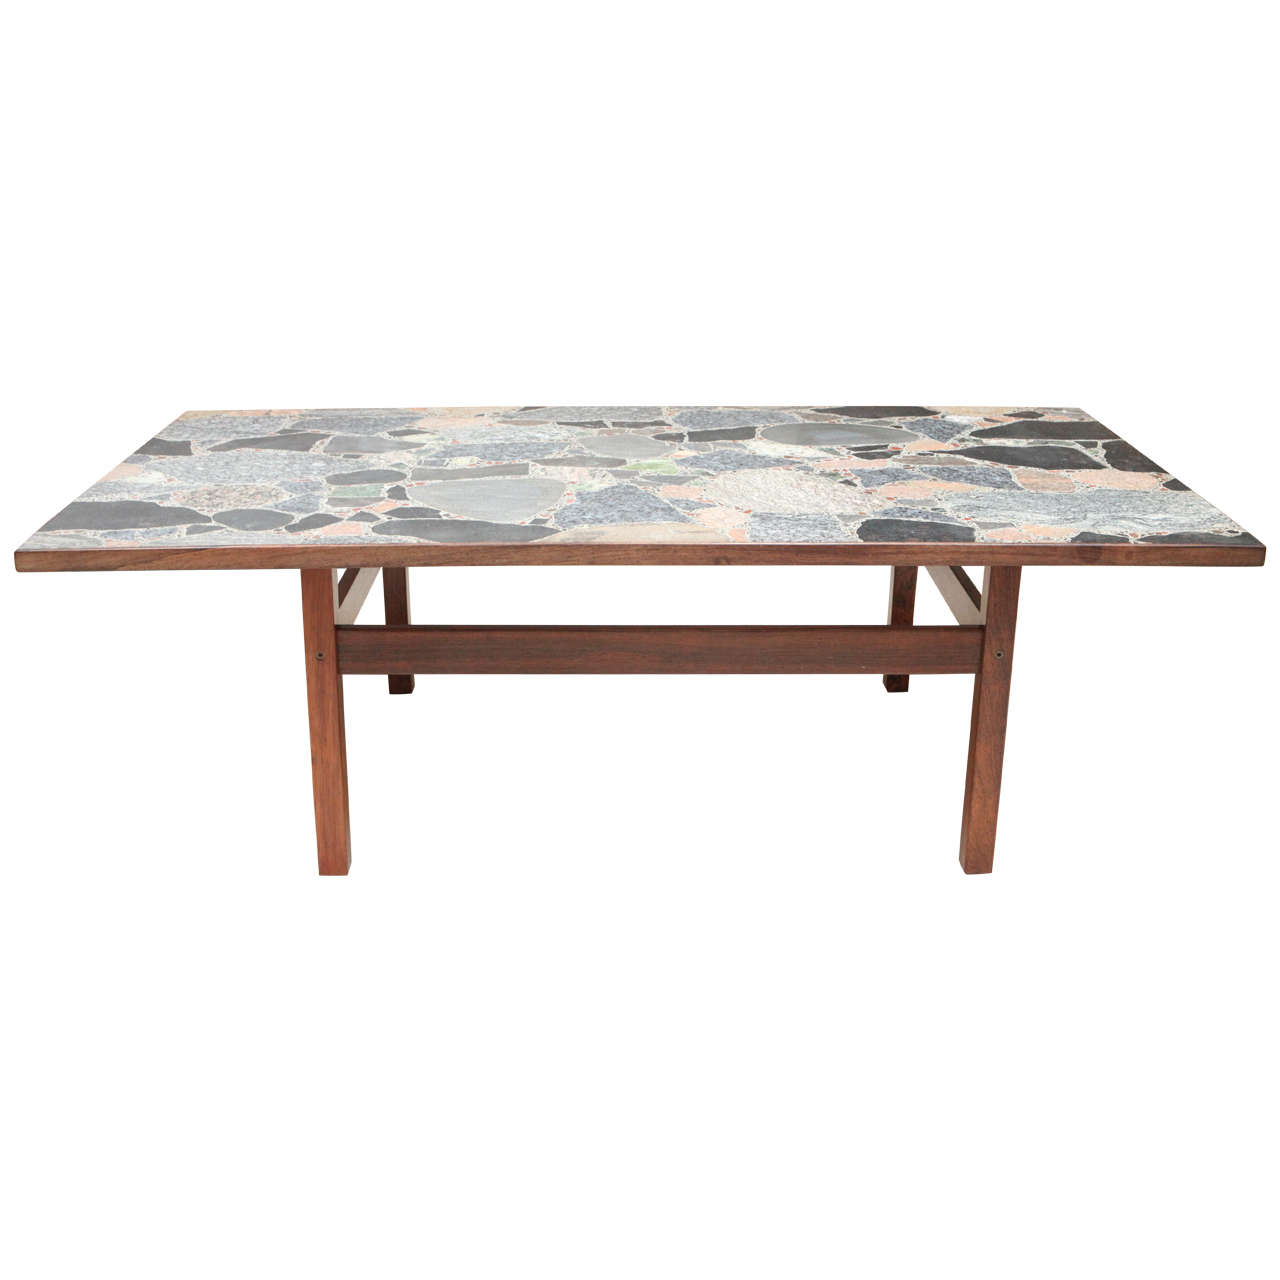 Danish Rosewood Coffee Table With Terrazzo Stone Top At